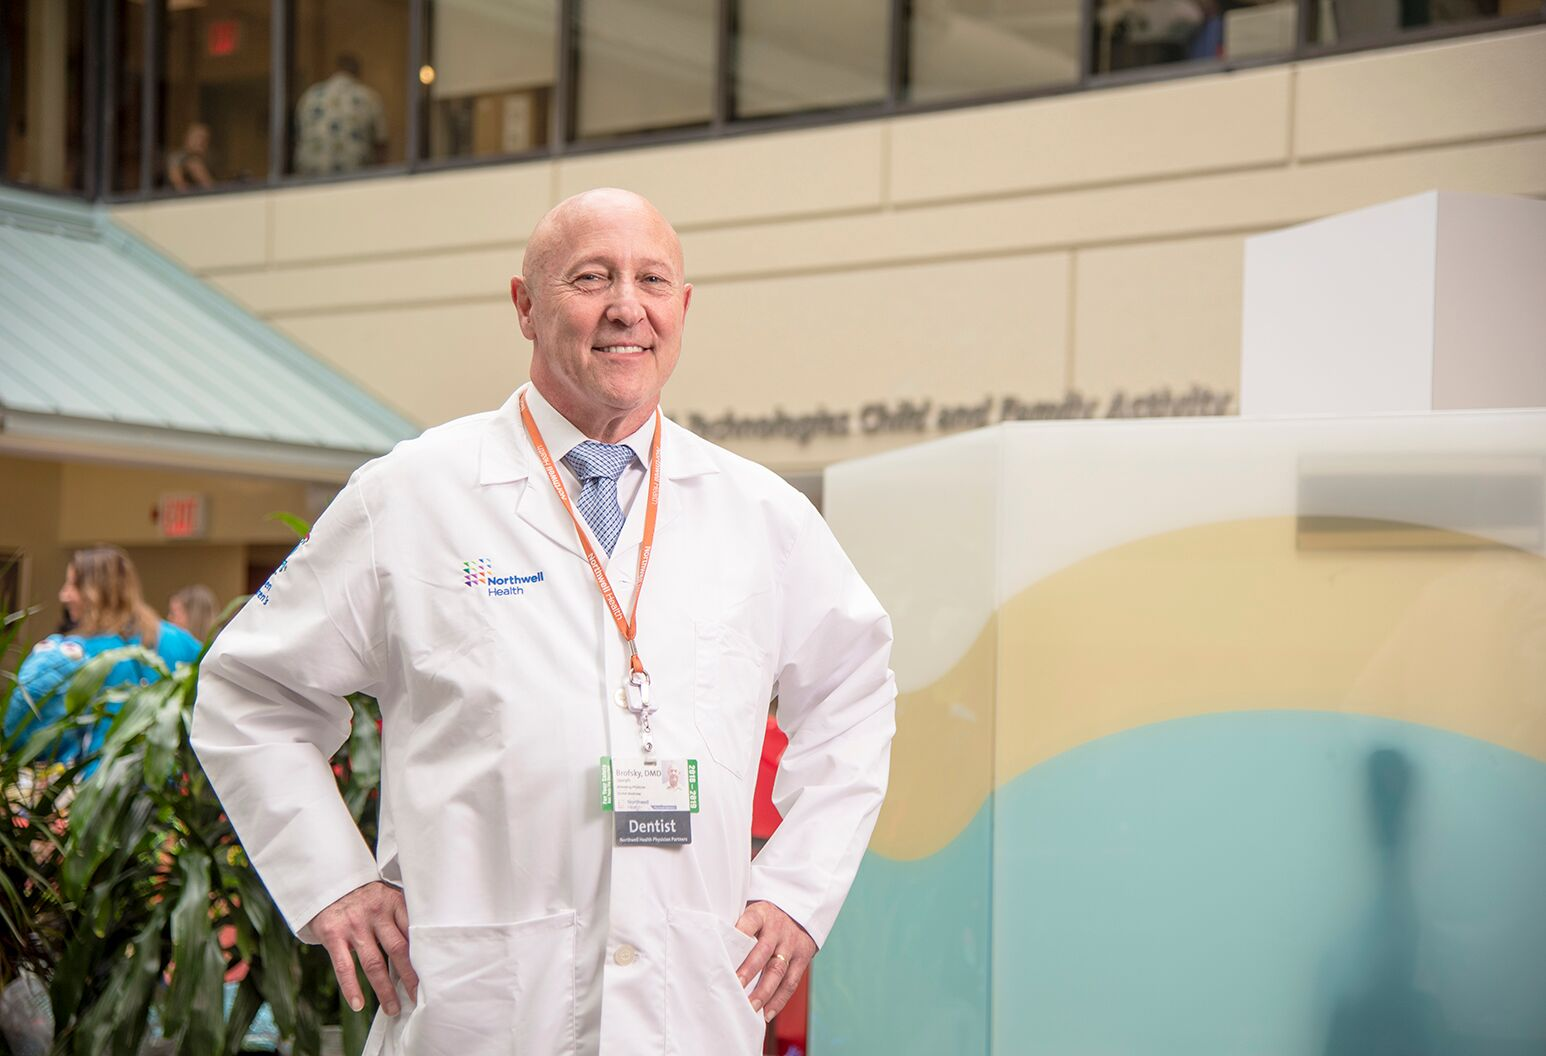 Give Kids A Smile ambassador Dr. Joseph Brofsky is being honored with a 2019 Shils Fund Innovator Award for his community service.